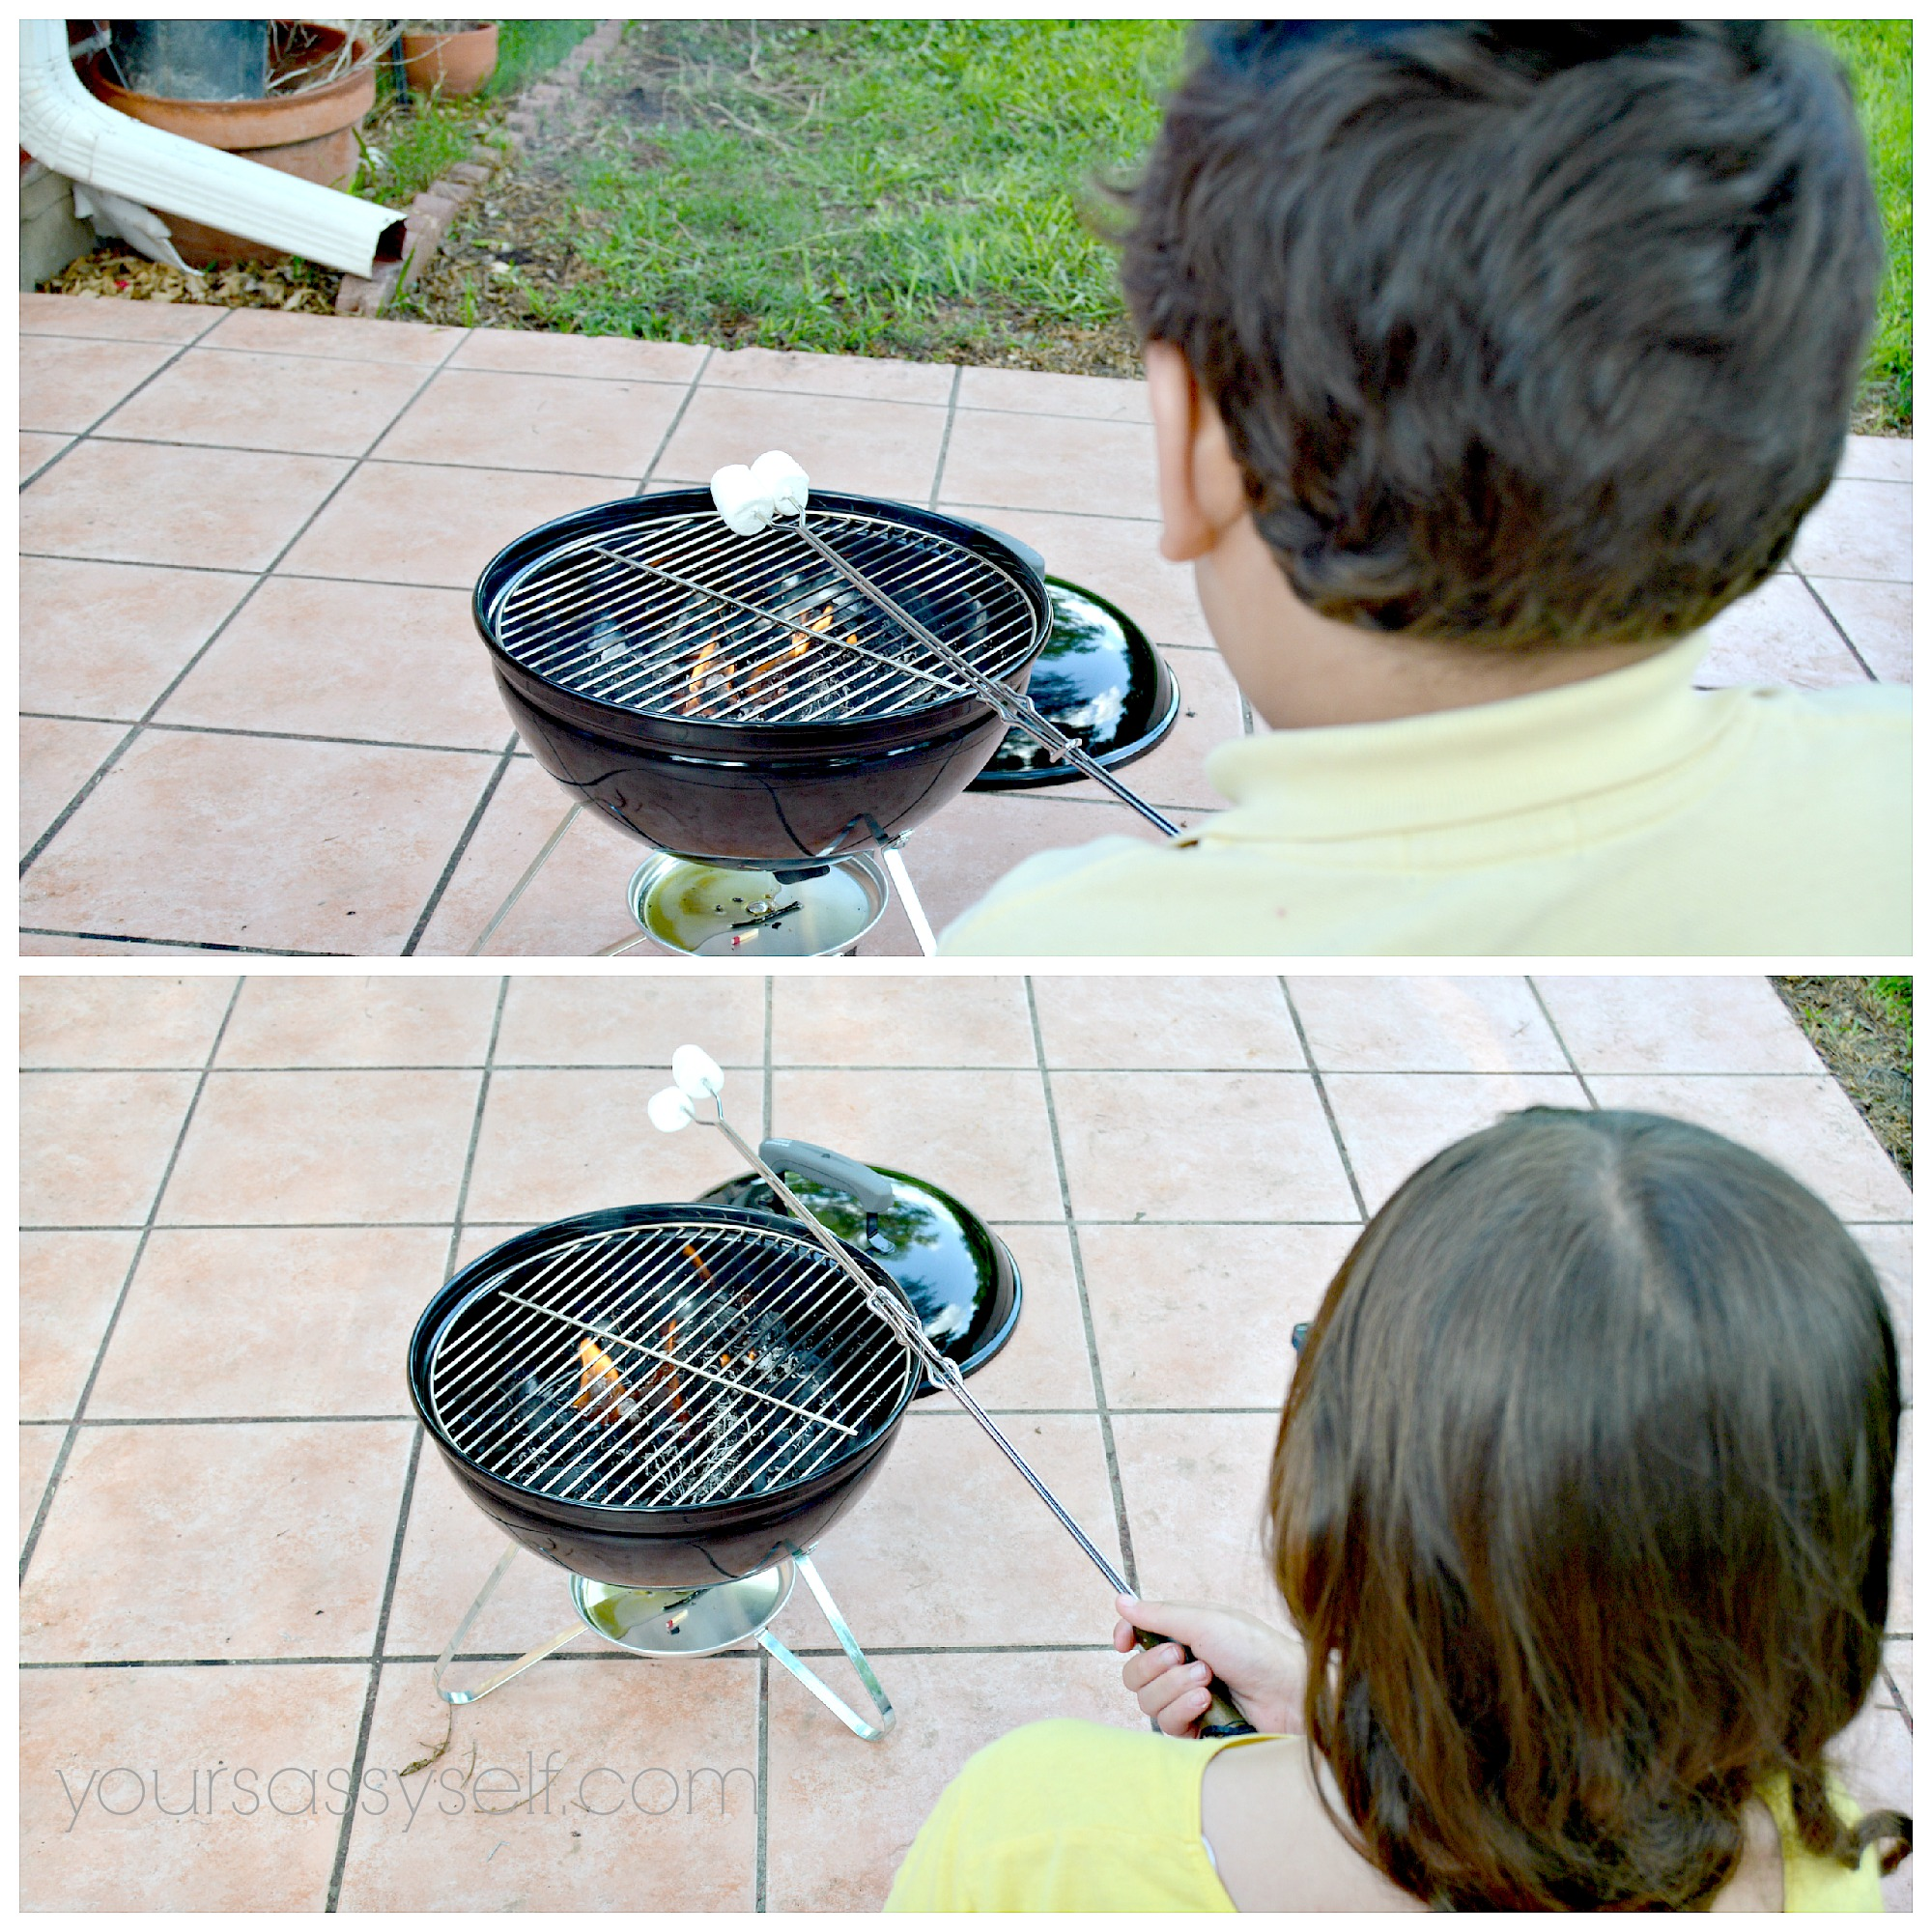 Kids Safely Roasting Marshmallows With Extension Fork - yoursassyself.com